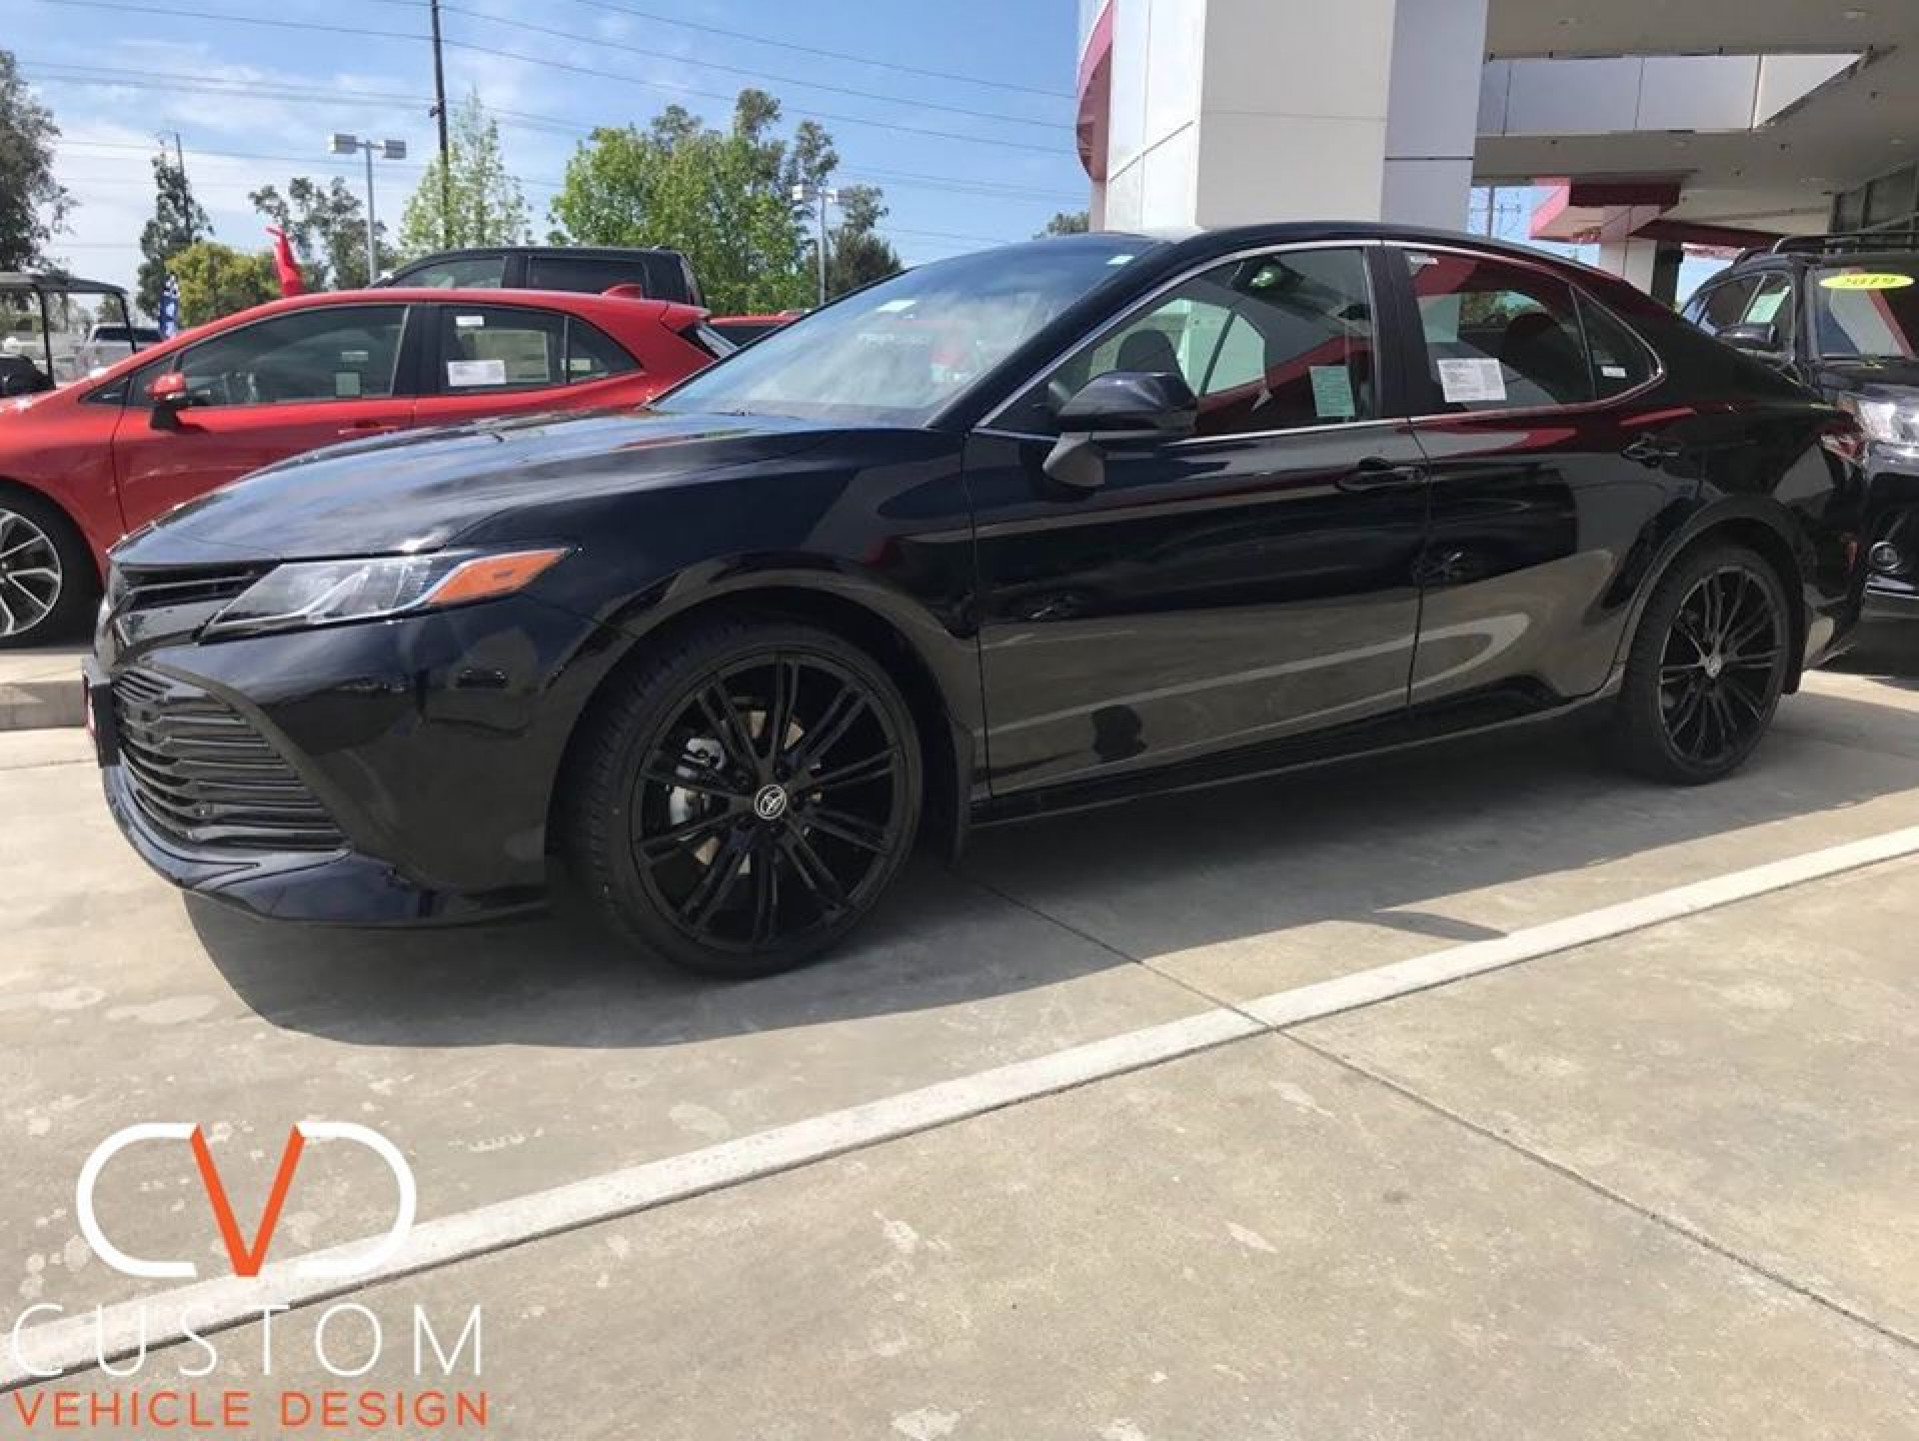 2020 Toyota Camry with Vogue VT386 wheels